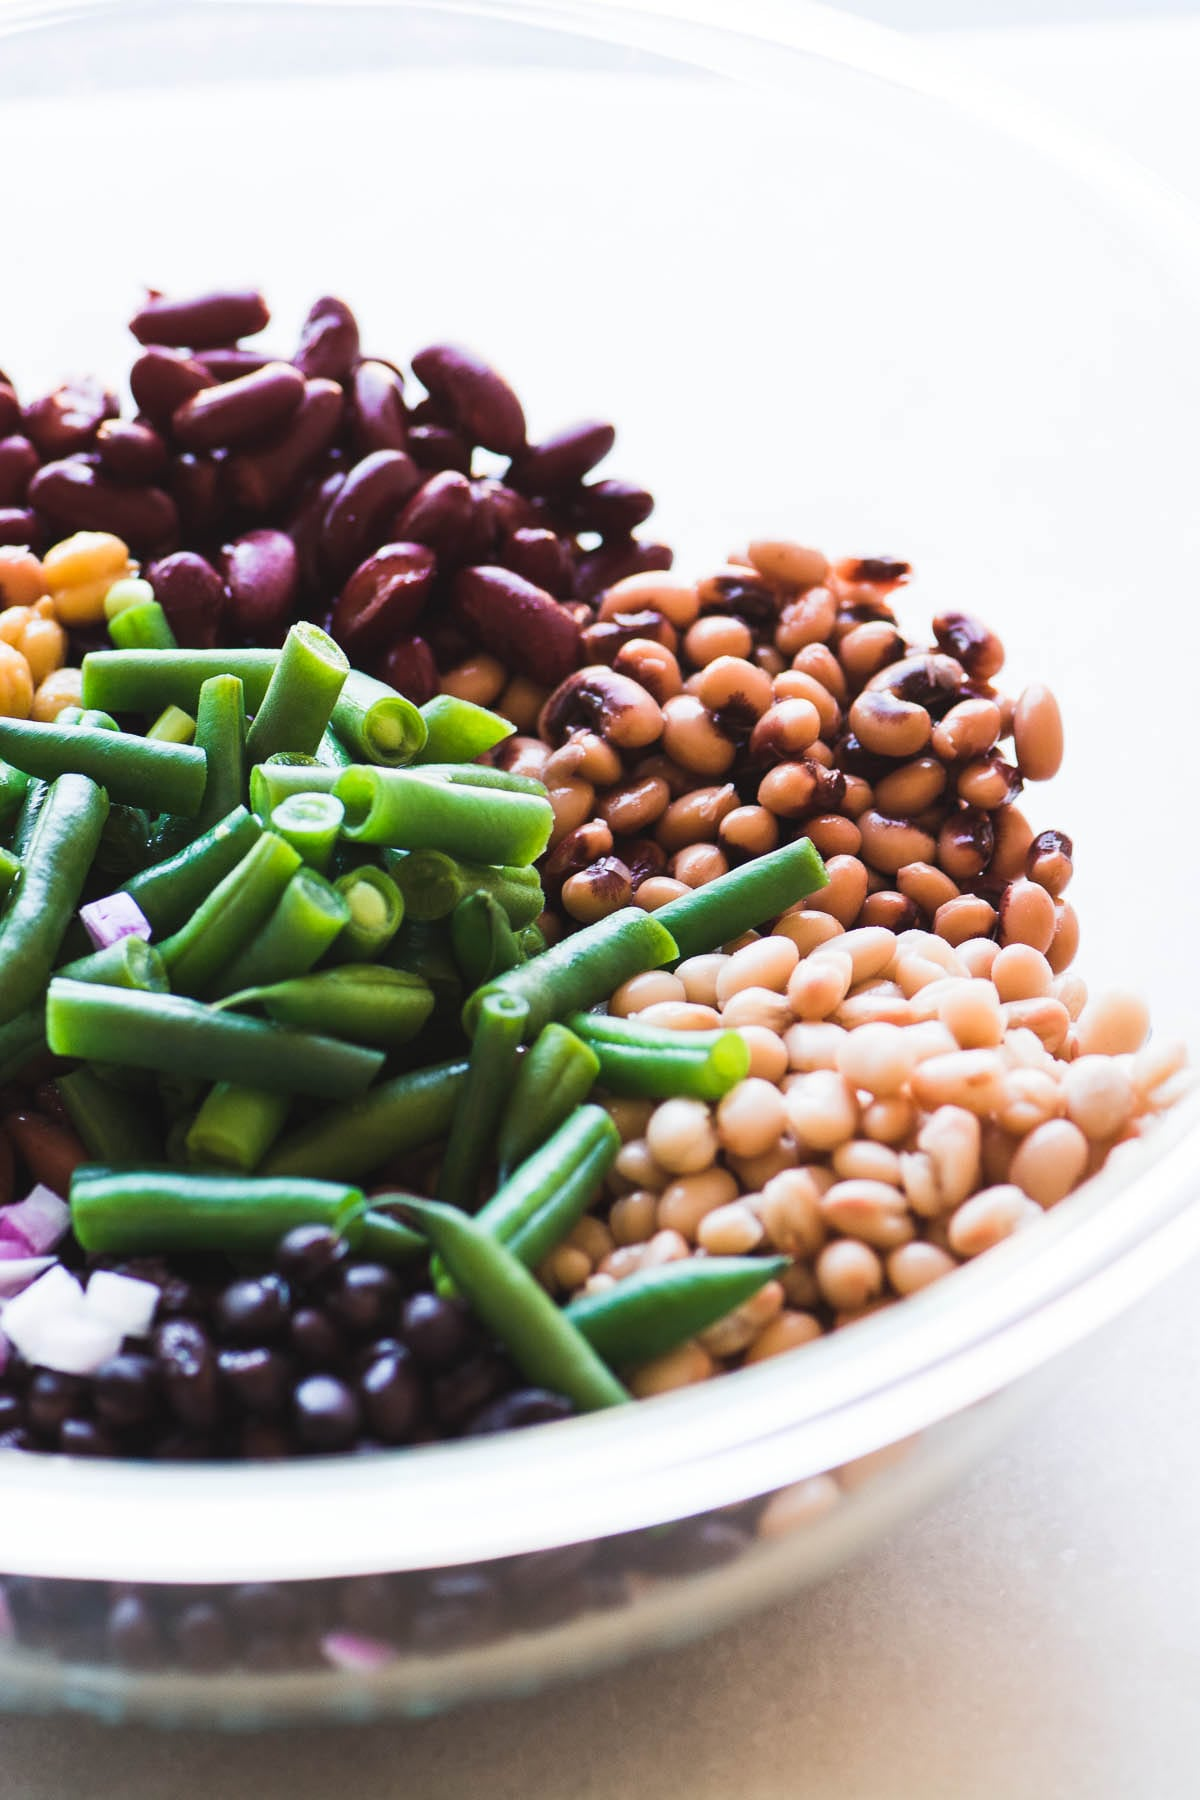 Ingredients for charred corn and bean salad in a large glass bowl